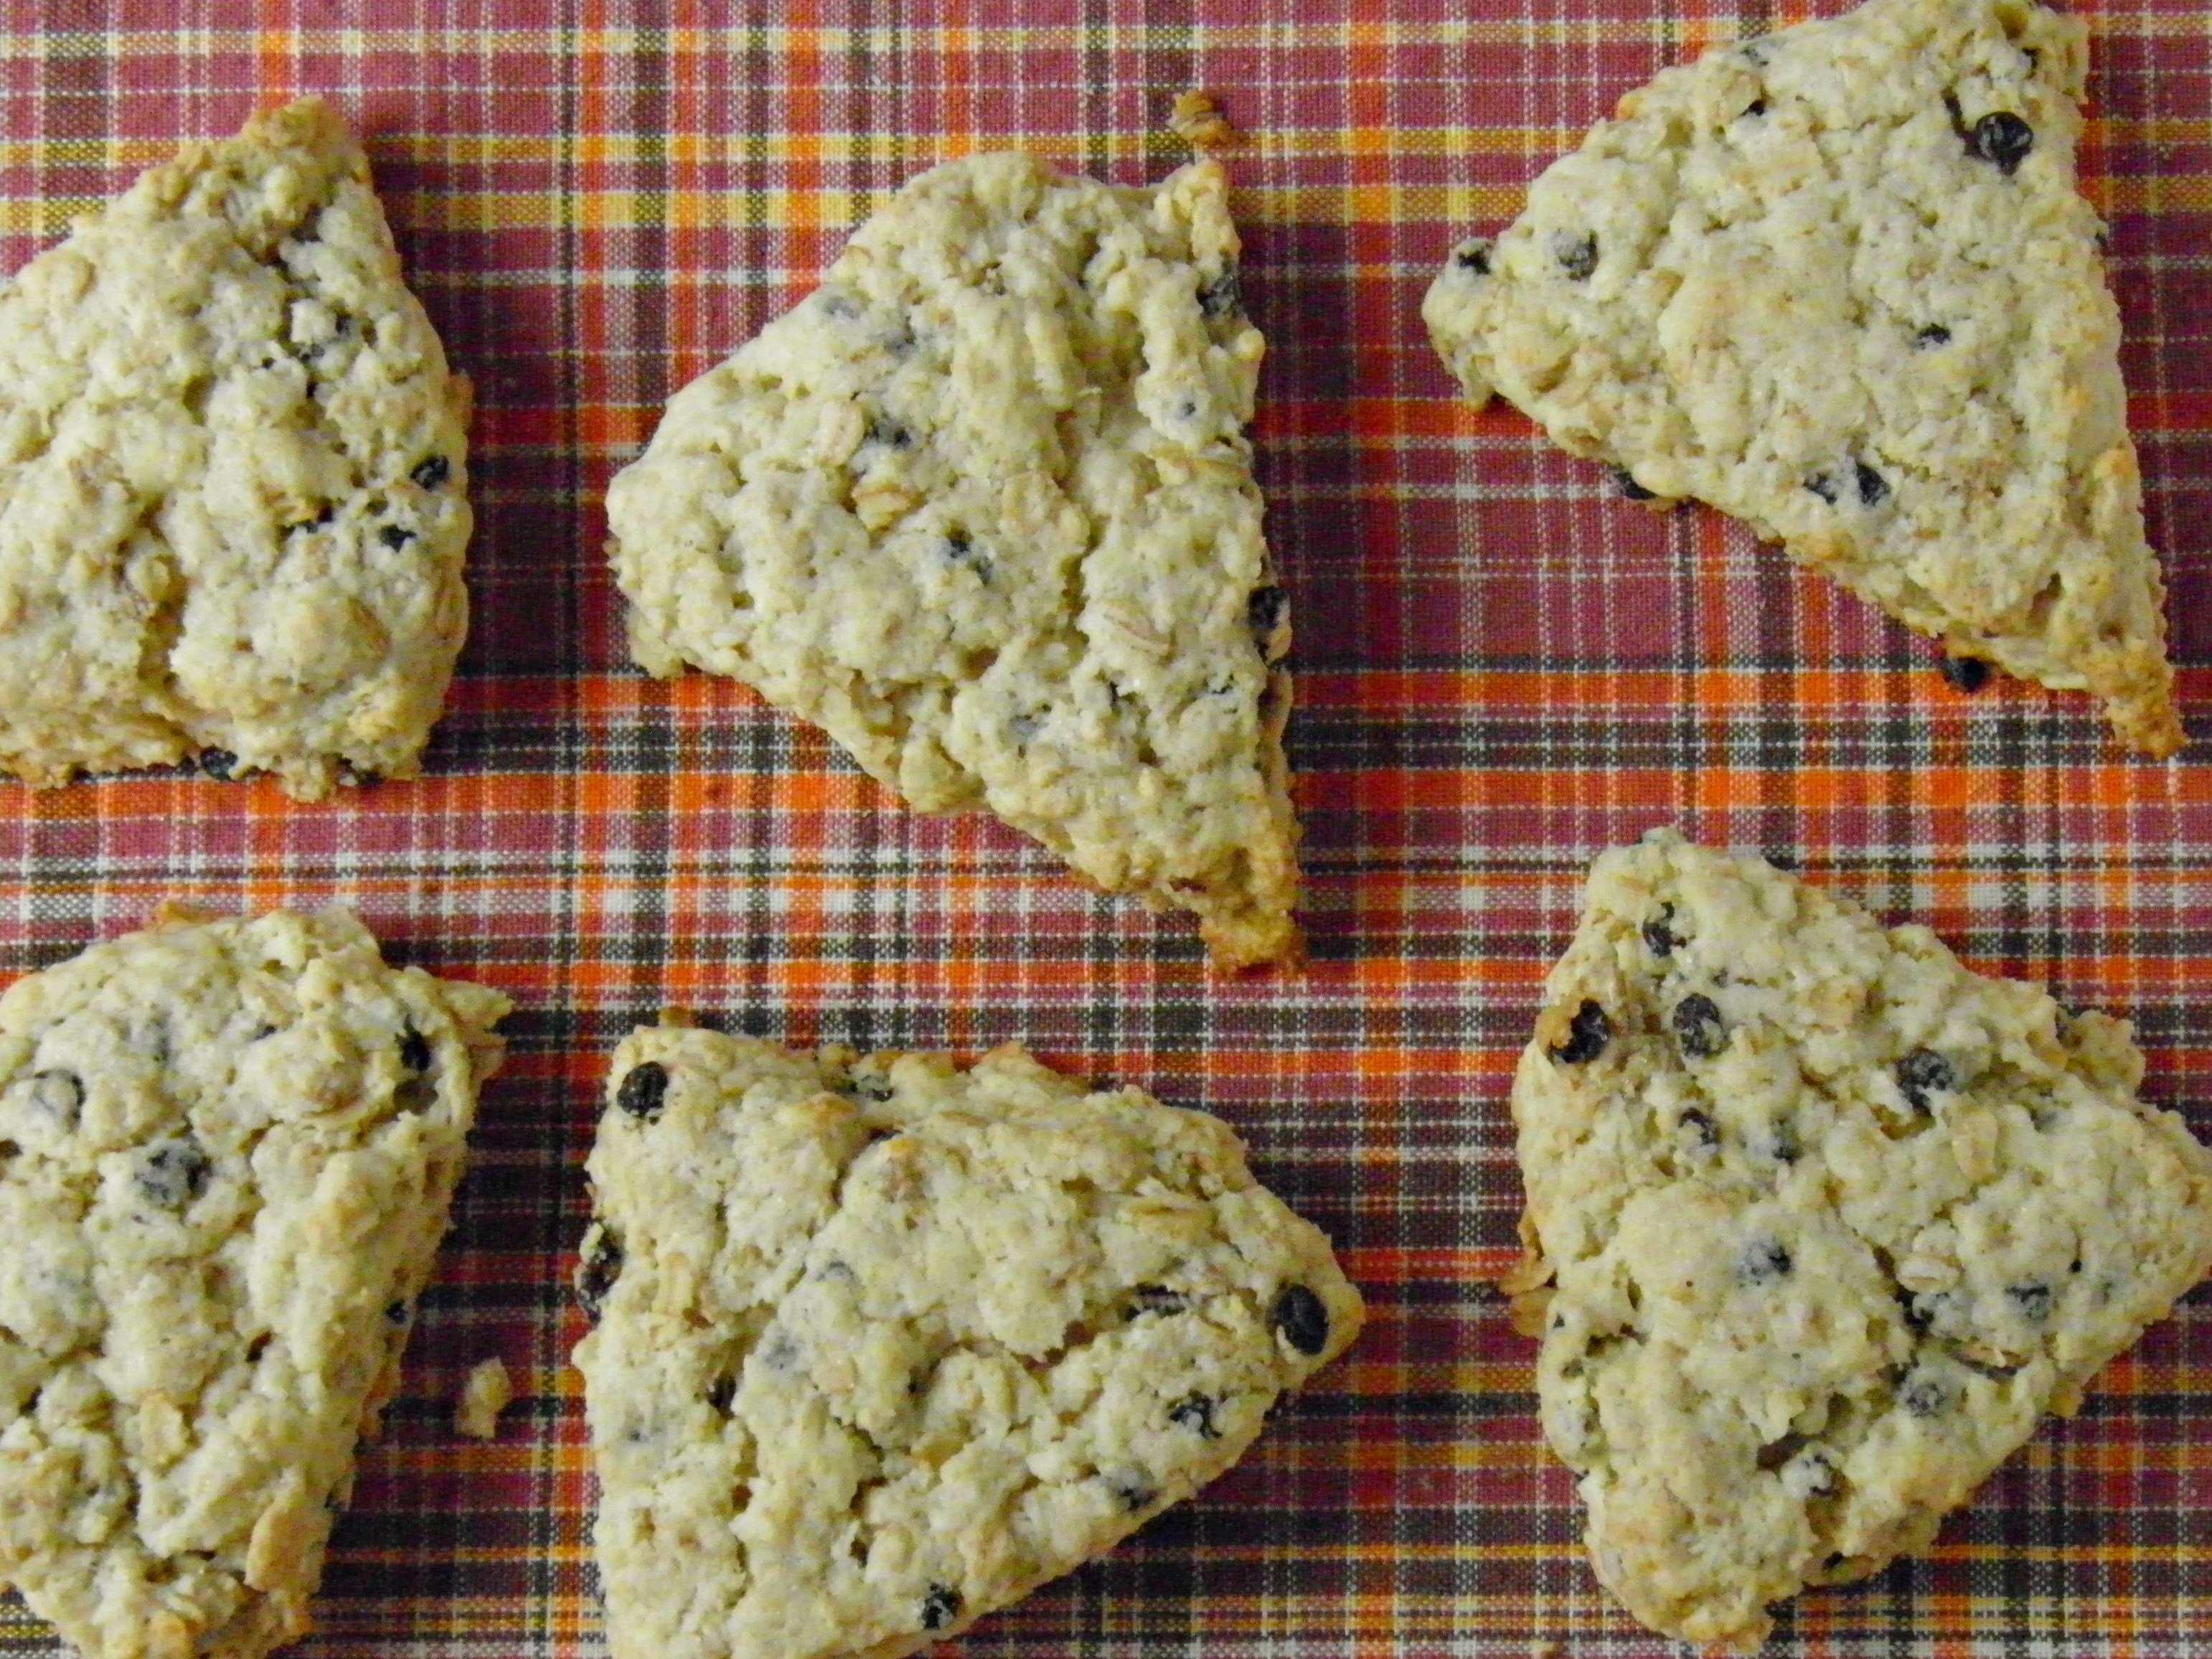 Scottish Oatmeal Scones | Forkful of Awesome